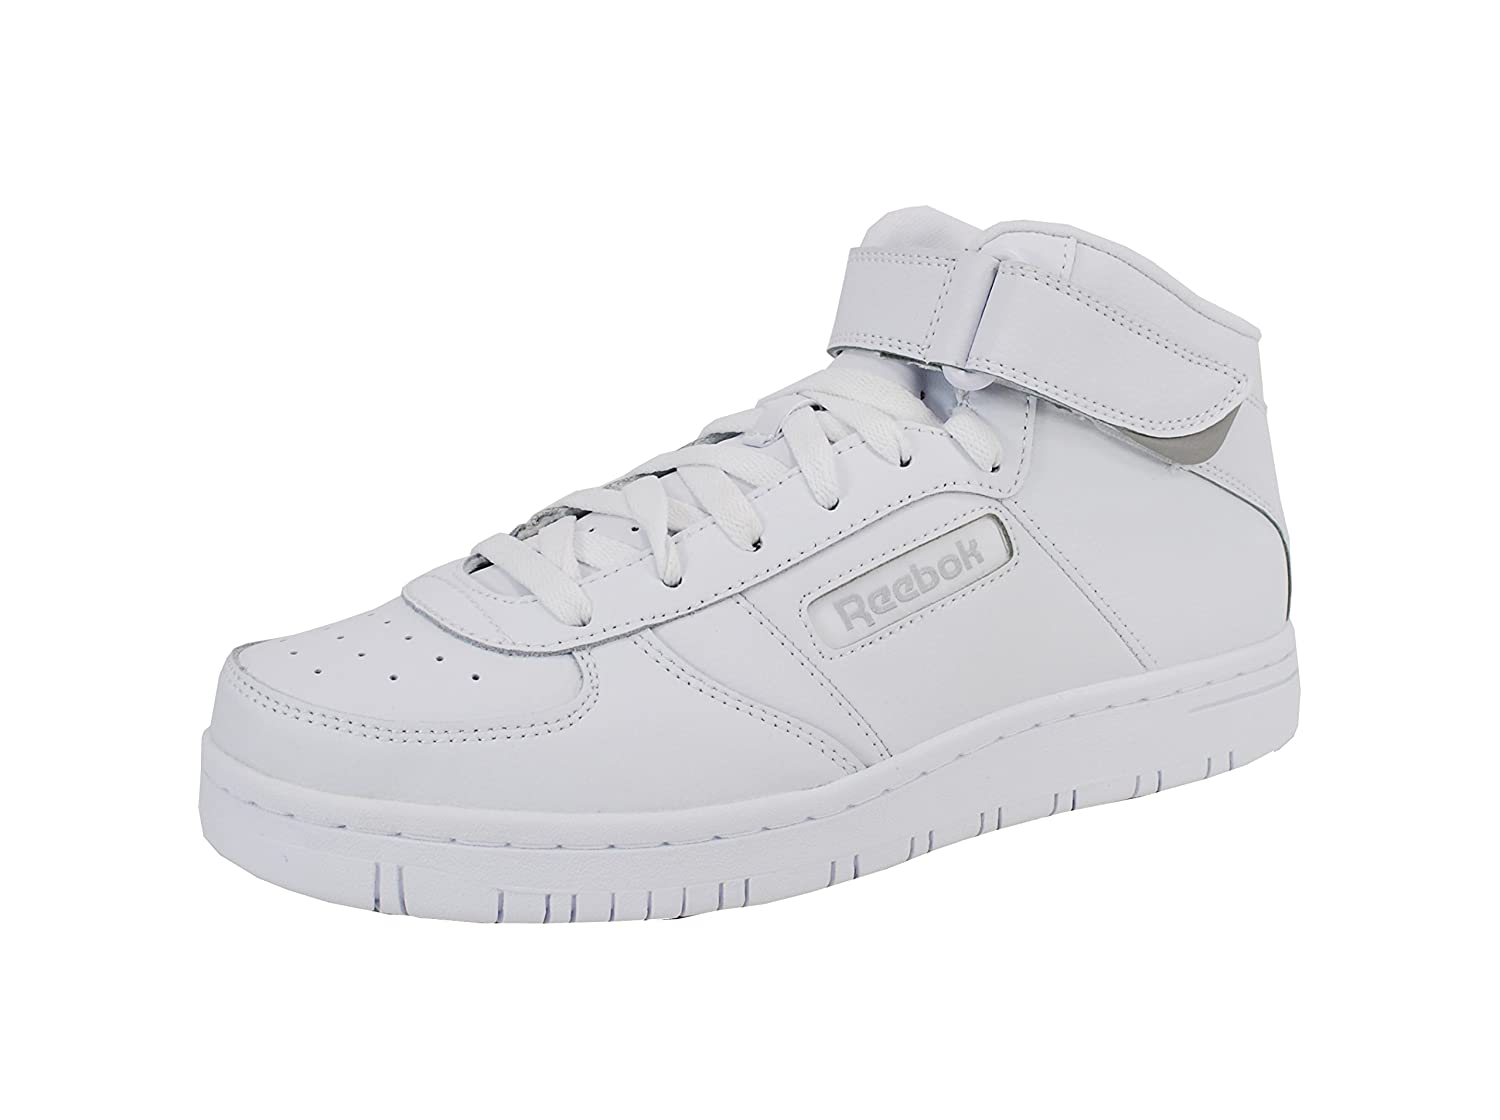 e25d22ee8100 85%OFF Reebok Classic Men s Royal Reeamaze Mid White Sneakers Shoes ...